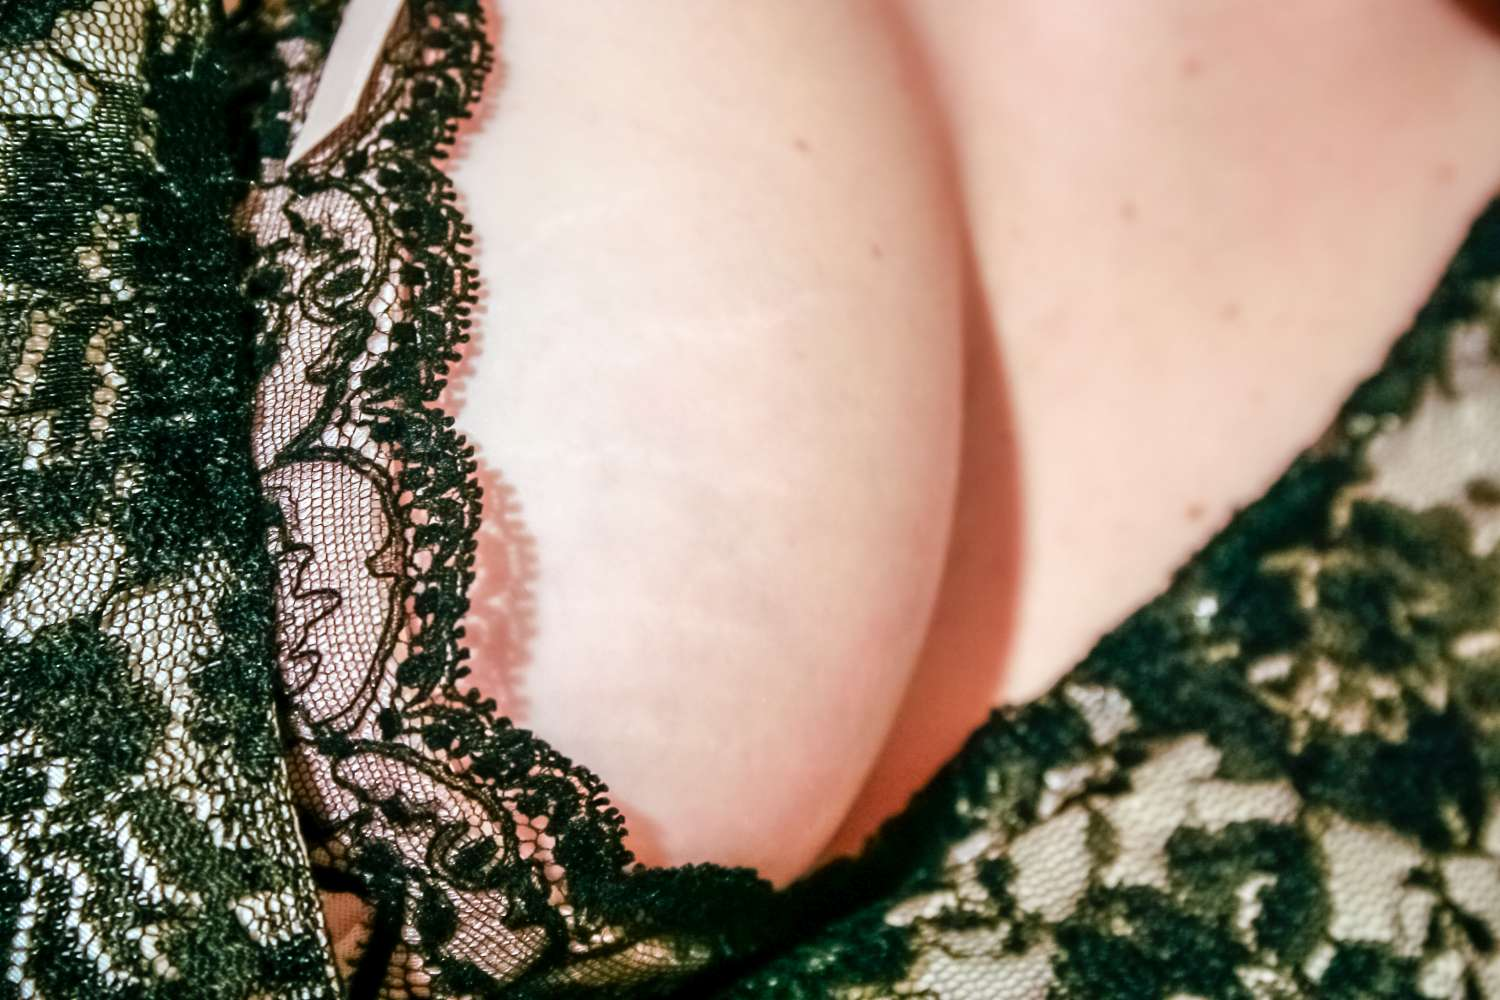 Myths and truths about breast implants